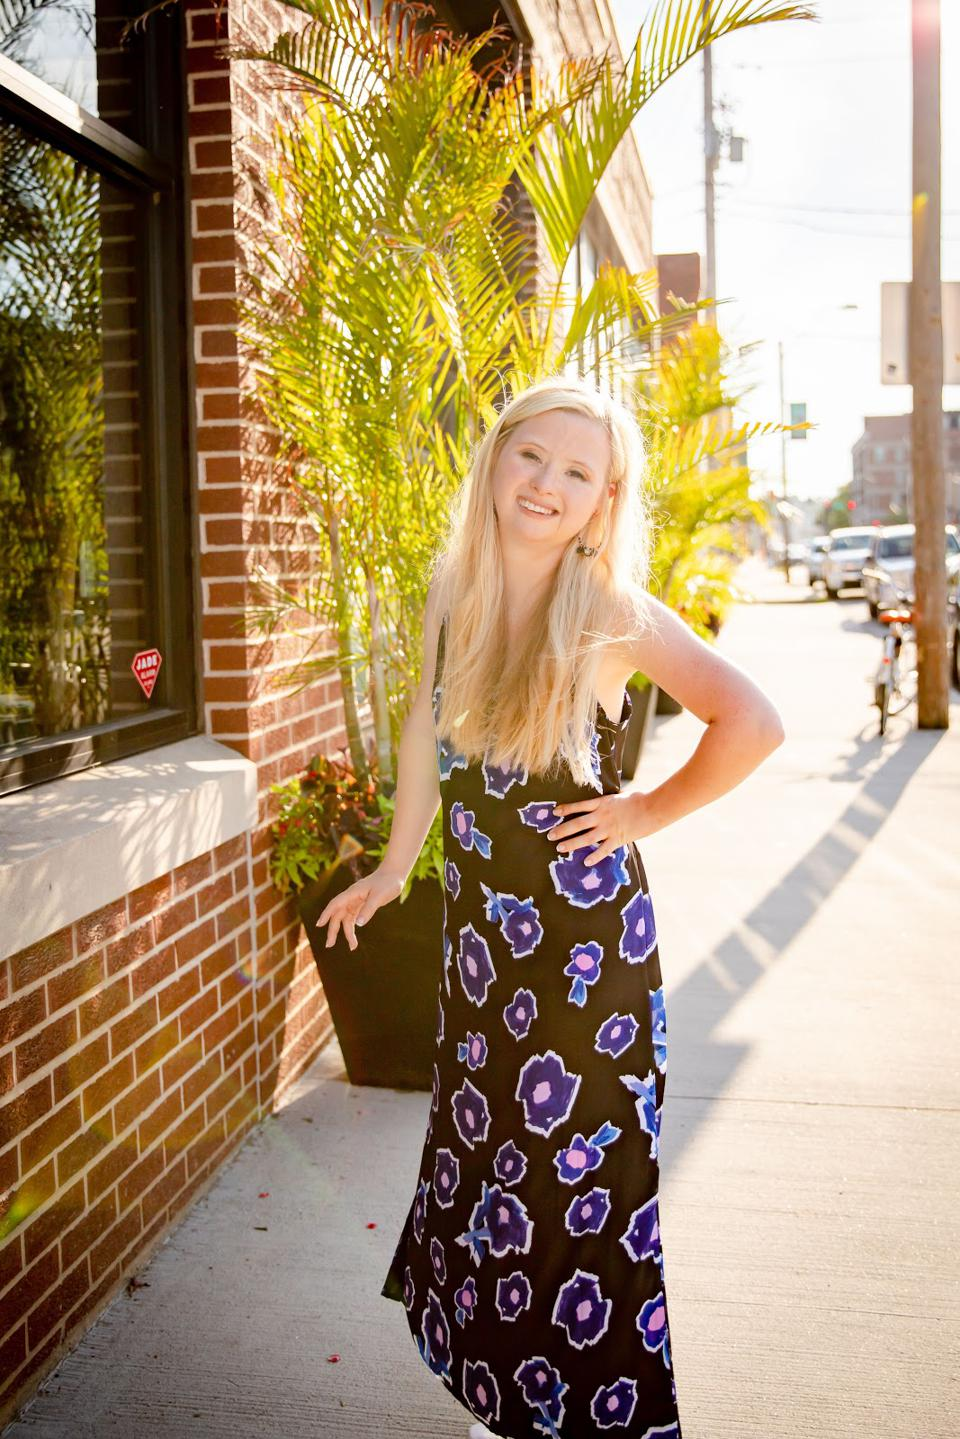 Grace Strobel, model with Down Syndrome, modeling for Alivia, an inclusive fashion brand.